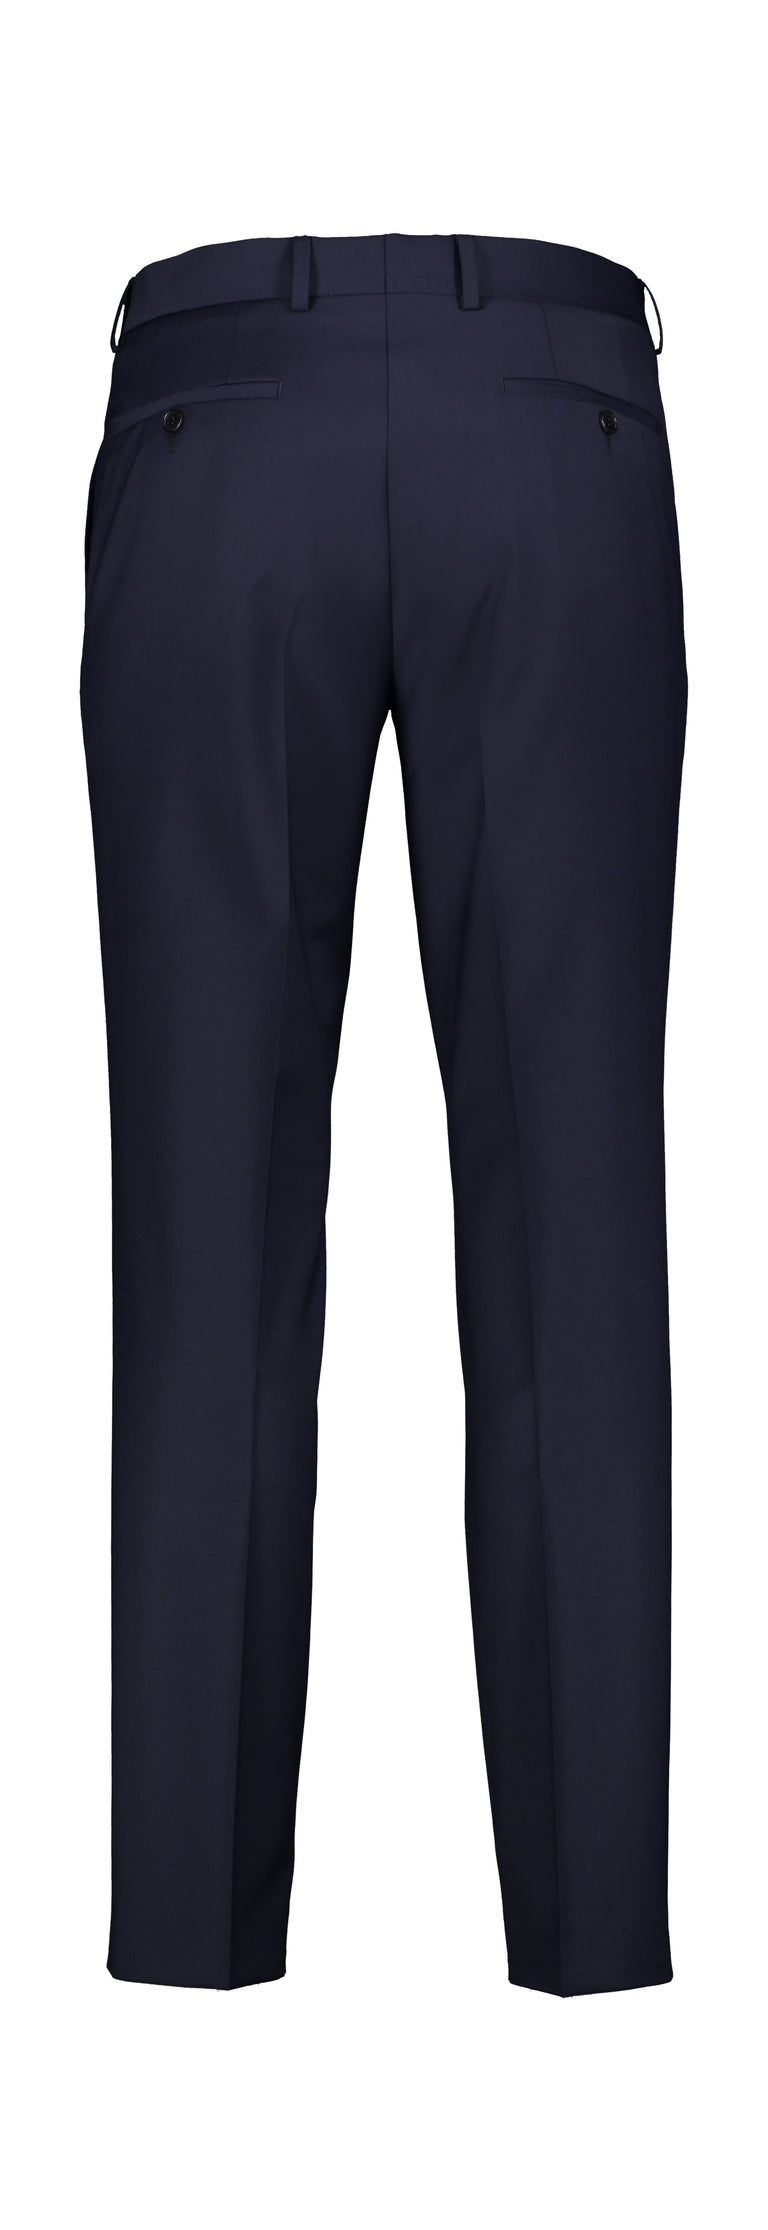 Extra slim fit trousers navy